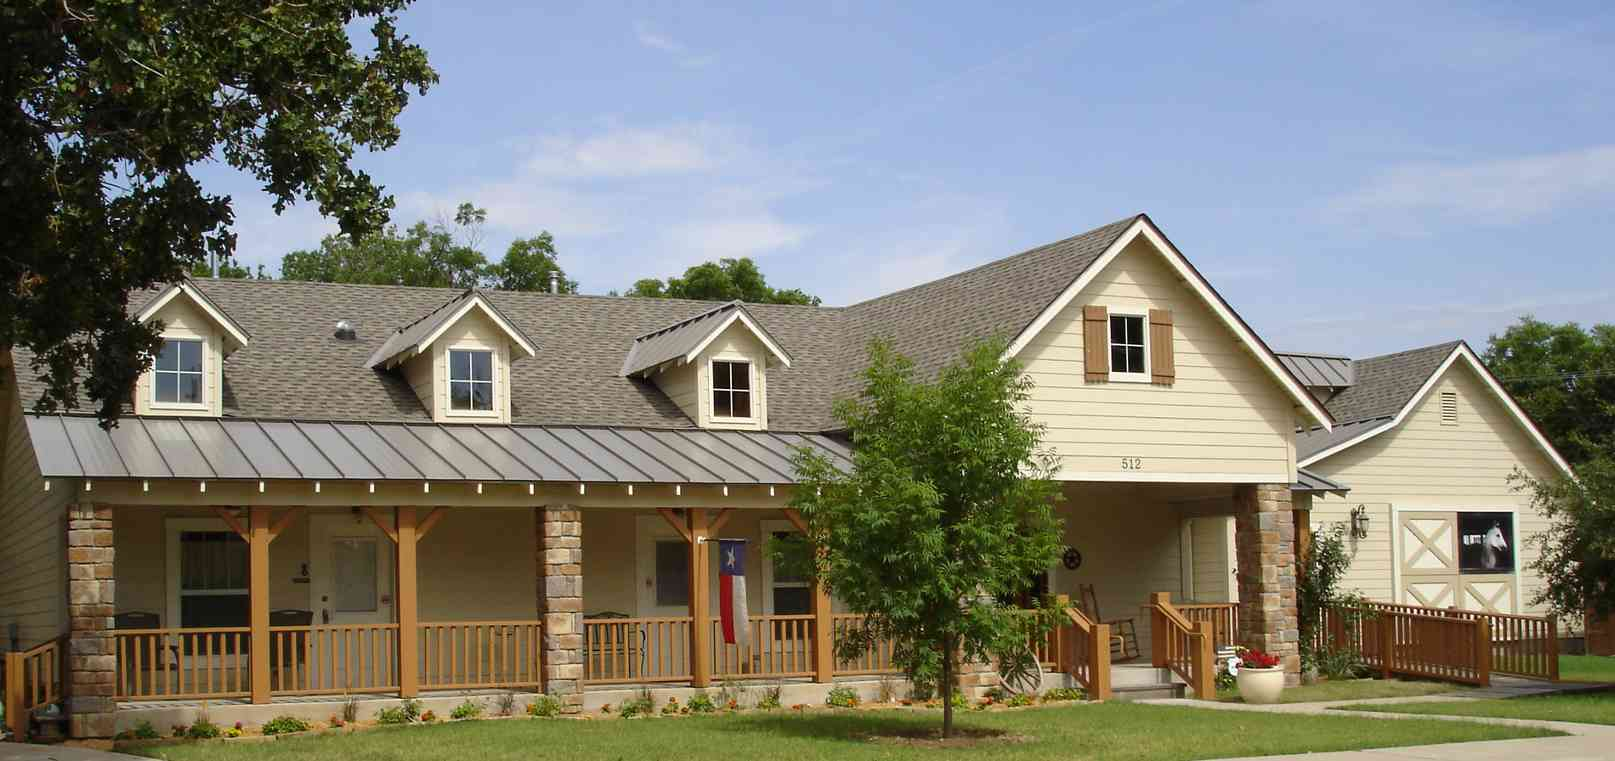 Texas Ranch House Style House Design Plans